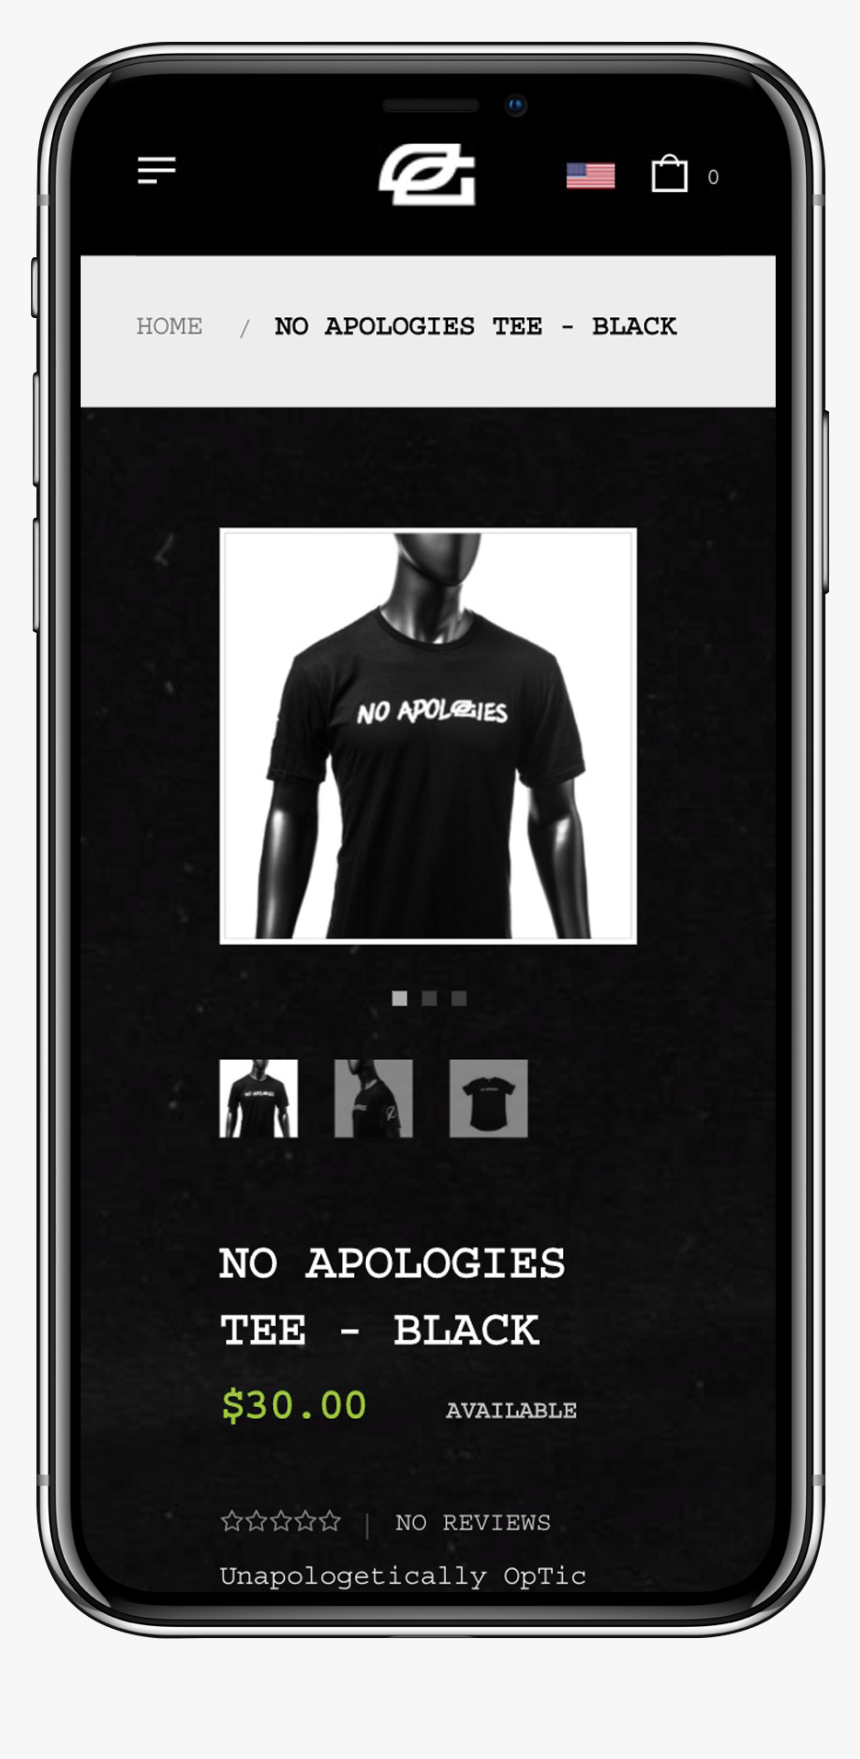 Mobile View Of Optic Gaming Store Merchandise Page - Iphone, HD Png Download, Free Download